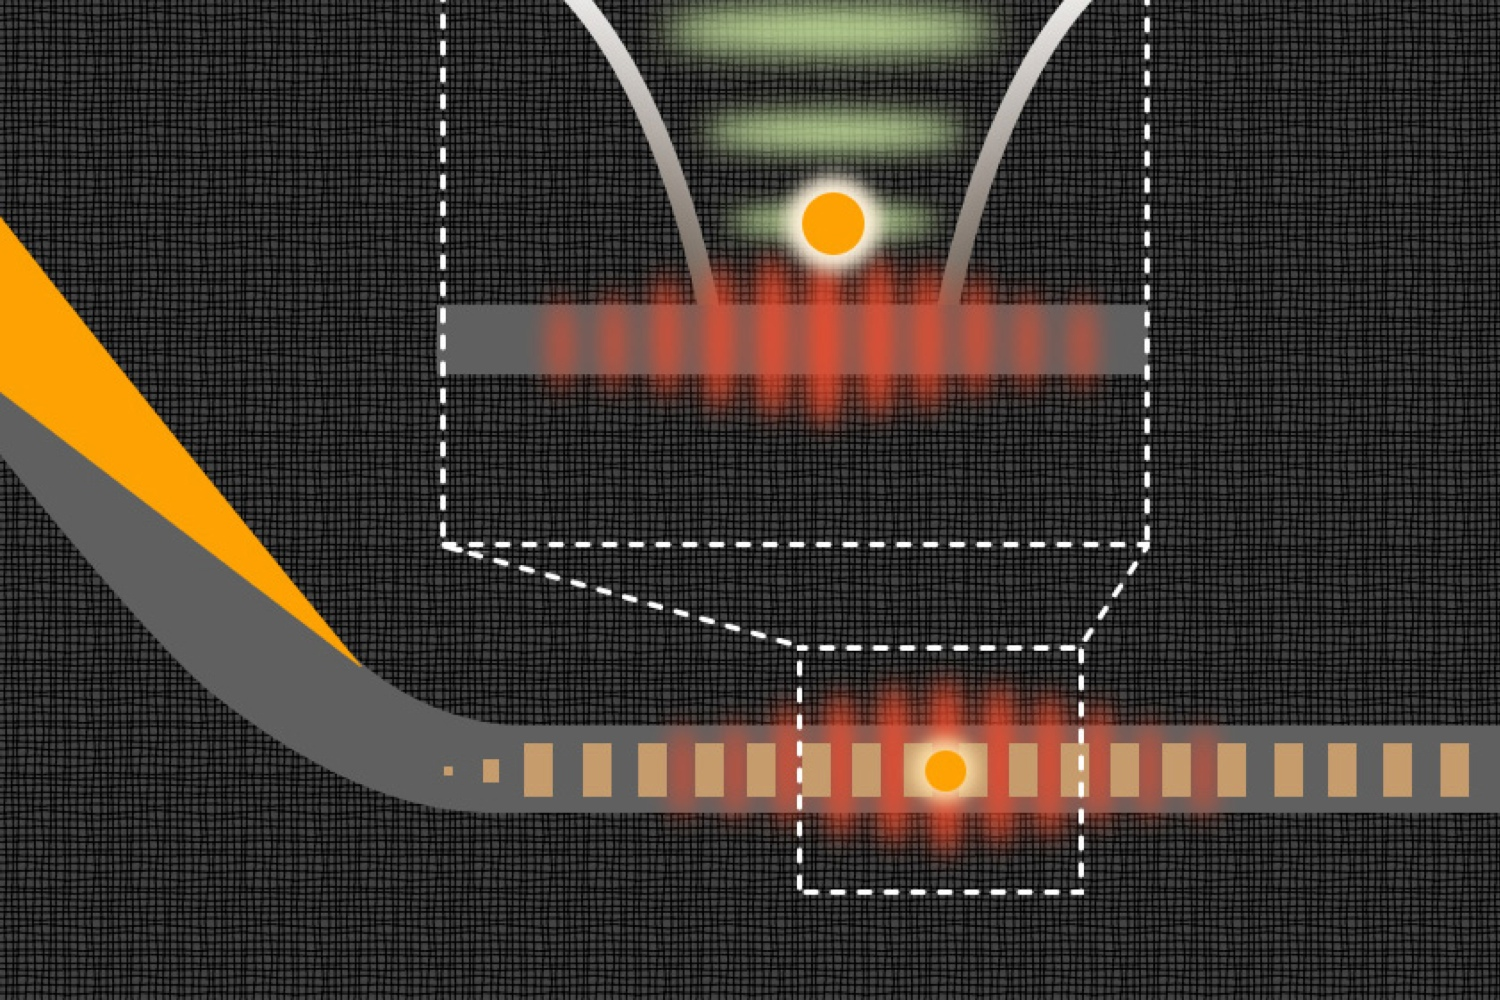 Scientists have developed a new method of trapping rubidium atoms in a lattice of light, which could help the development of quantum computing.